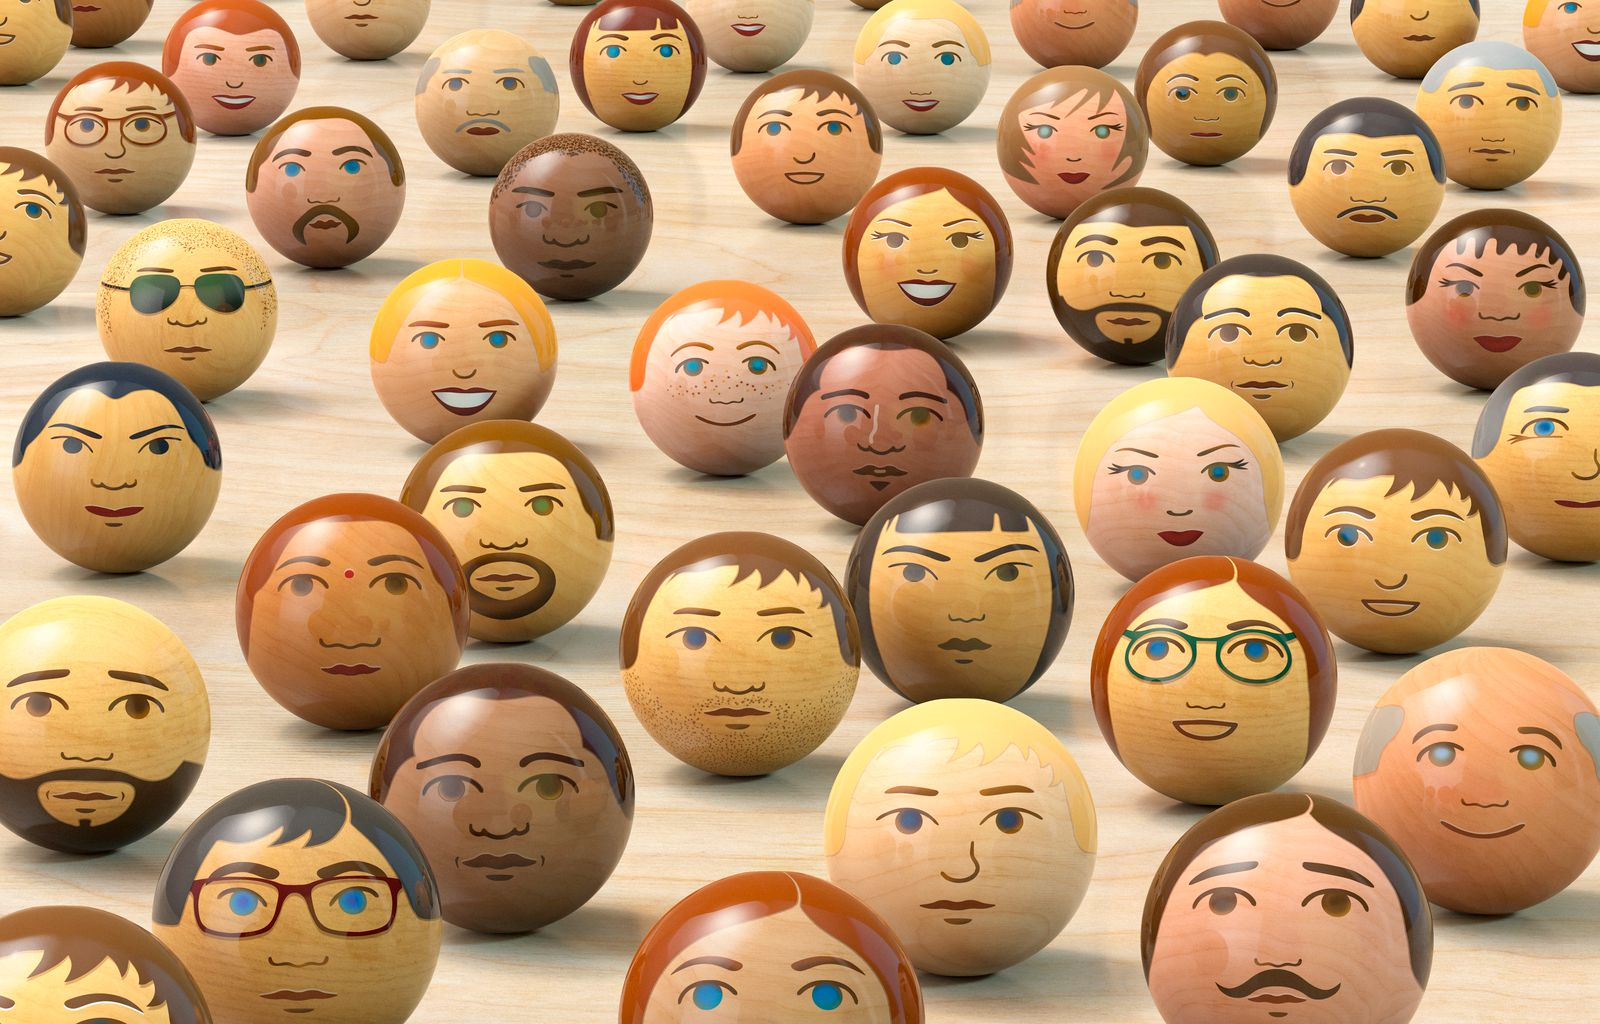 Wooden balls with multi-ethnic faces on them. (front view)